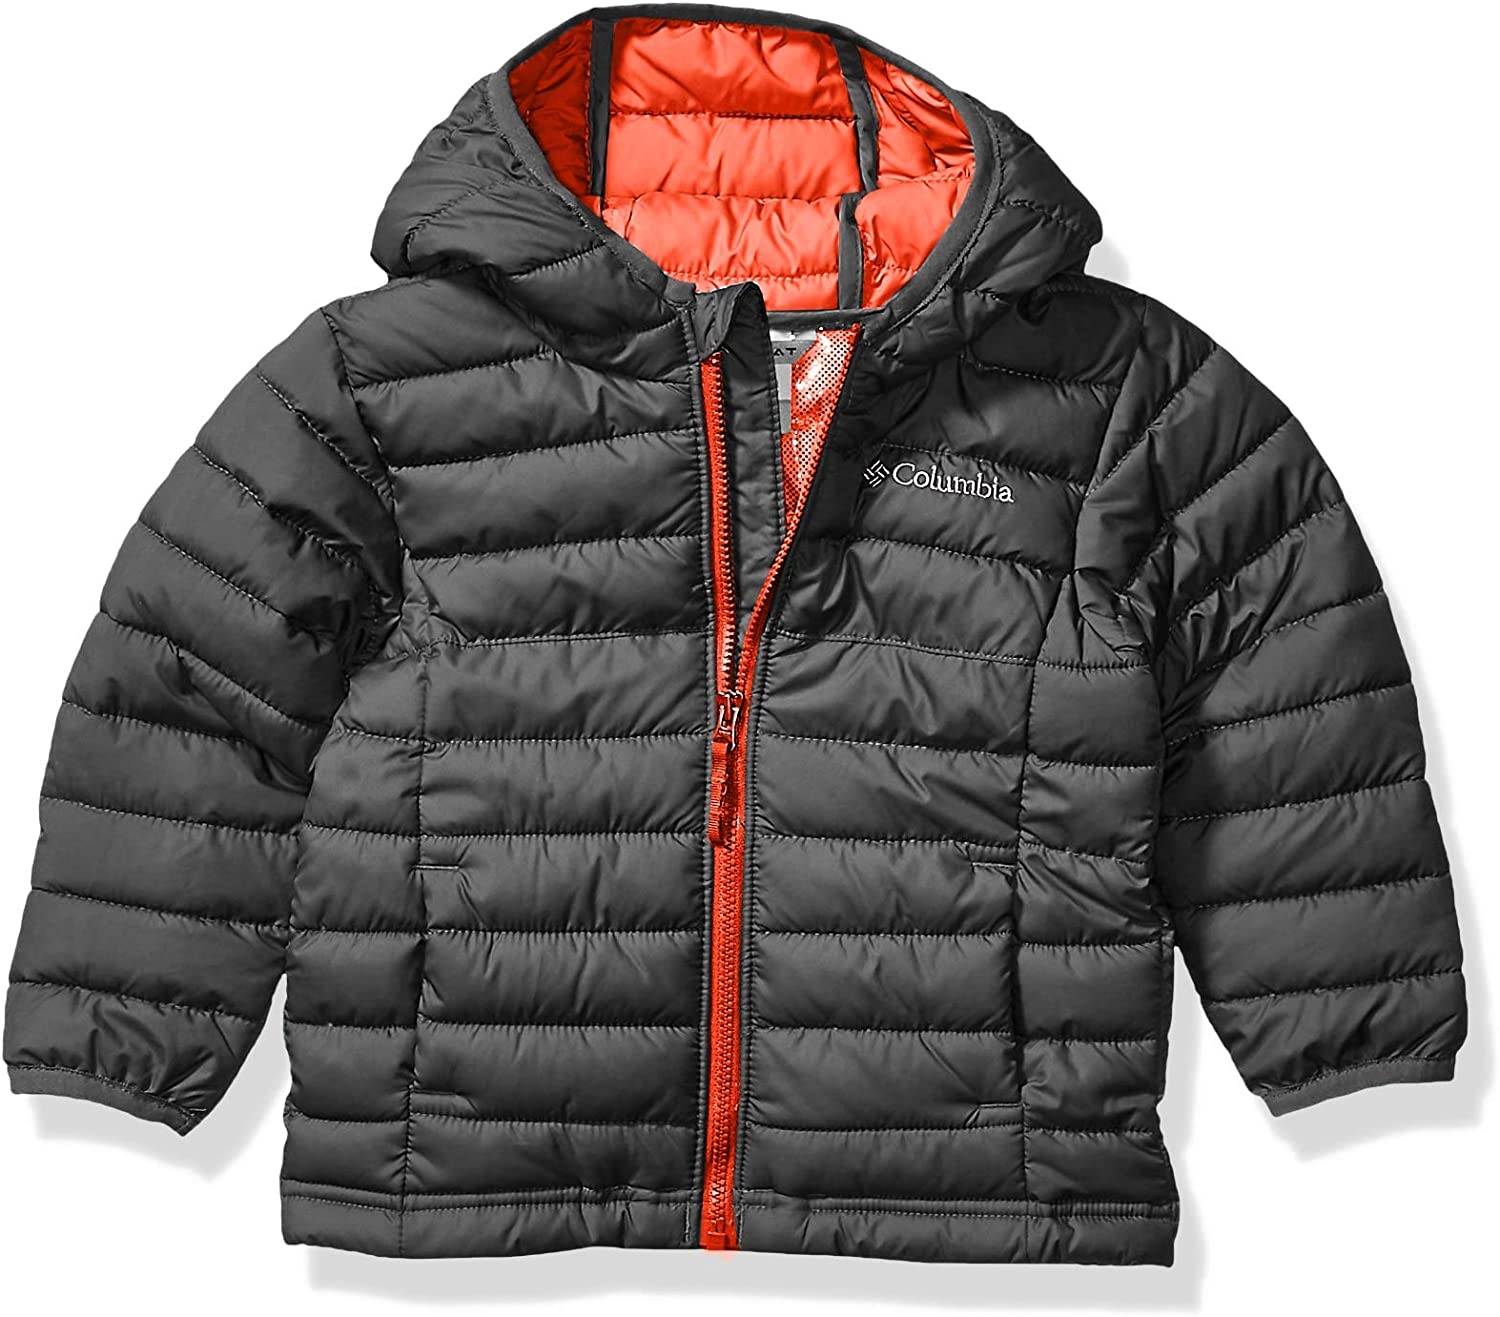 Columbia Powder Lite Hooded Winter Jacket